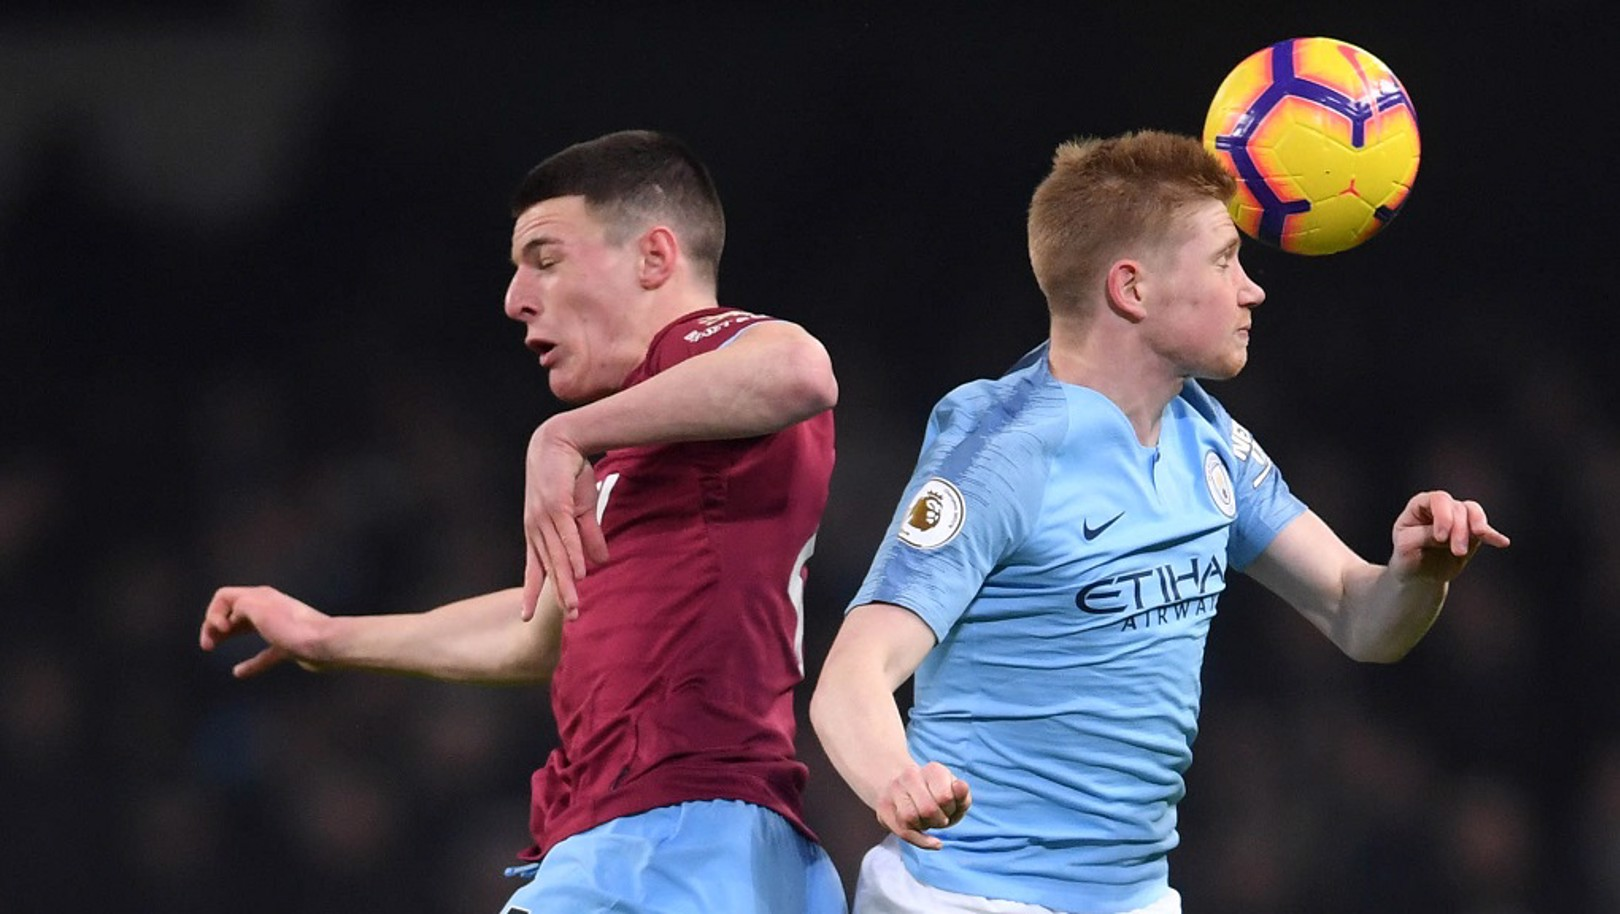 EYES WIDE SHUT: Kevin De Bruyne challenges Declan Rice